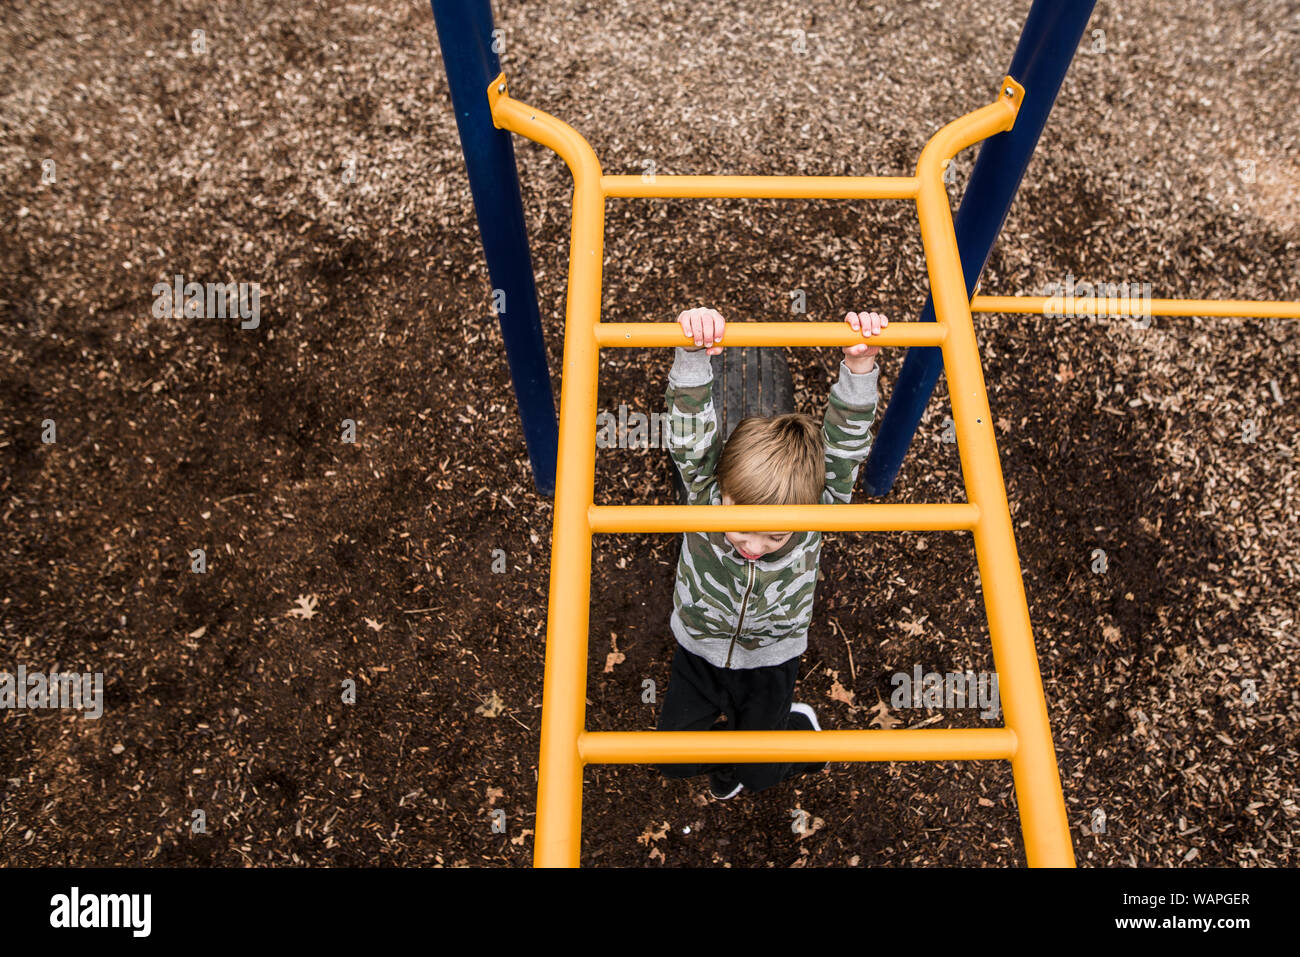 looking down from above at young boy going across monkey bars at park Stock Photo